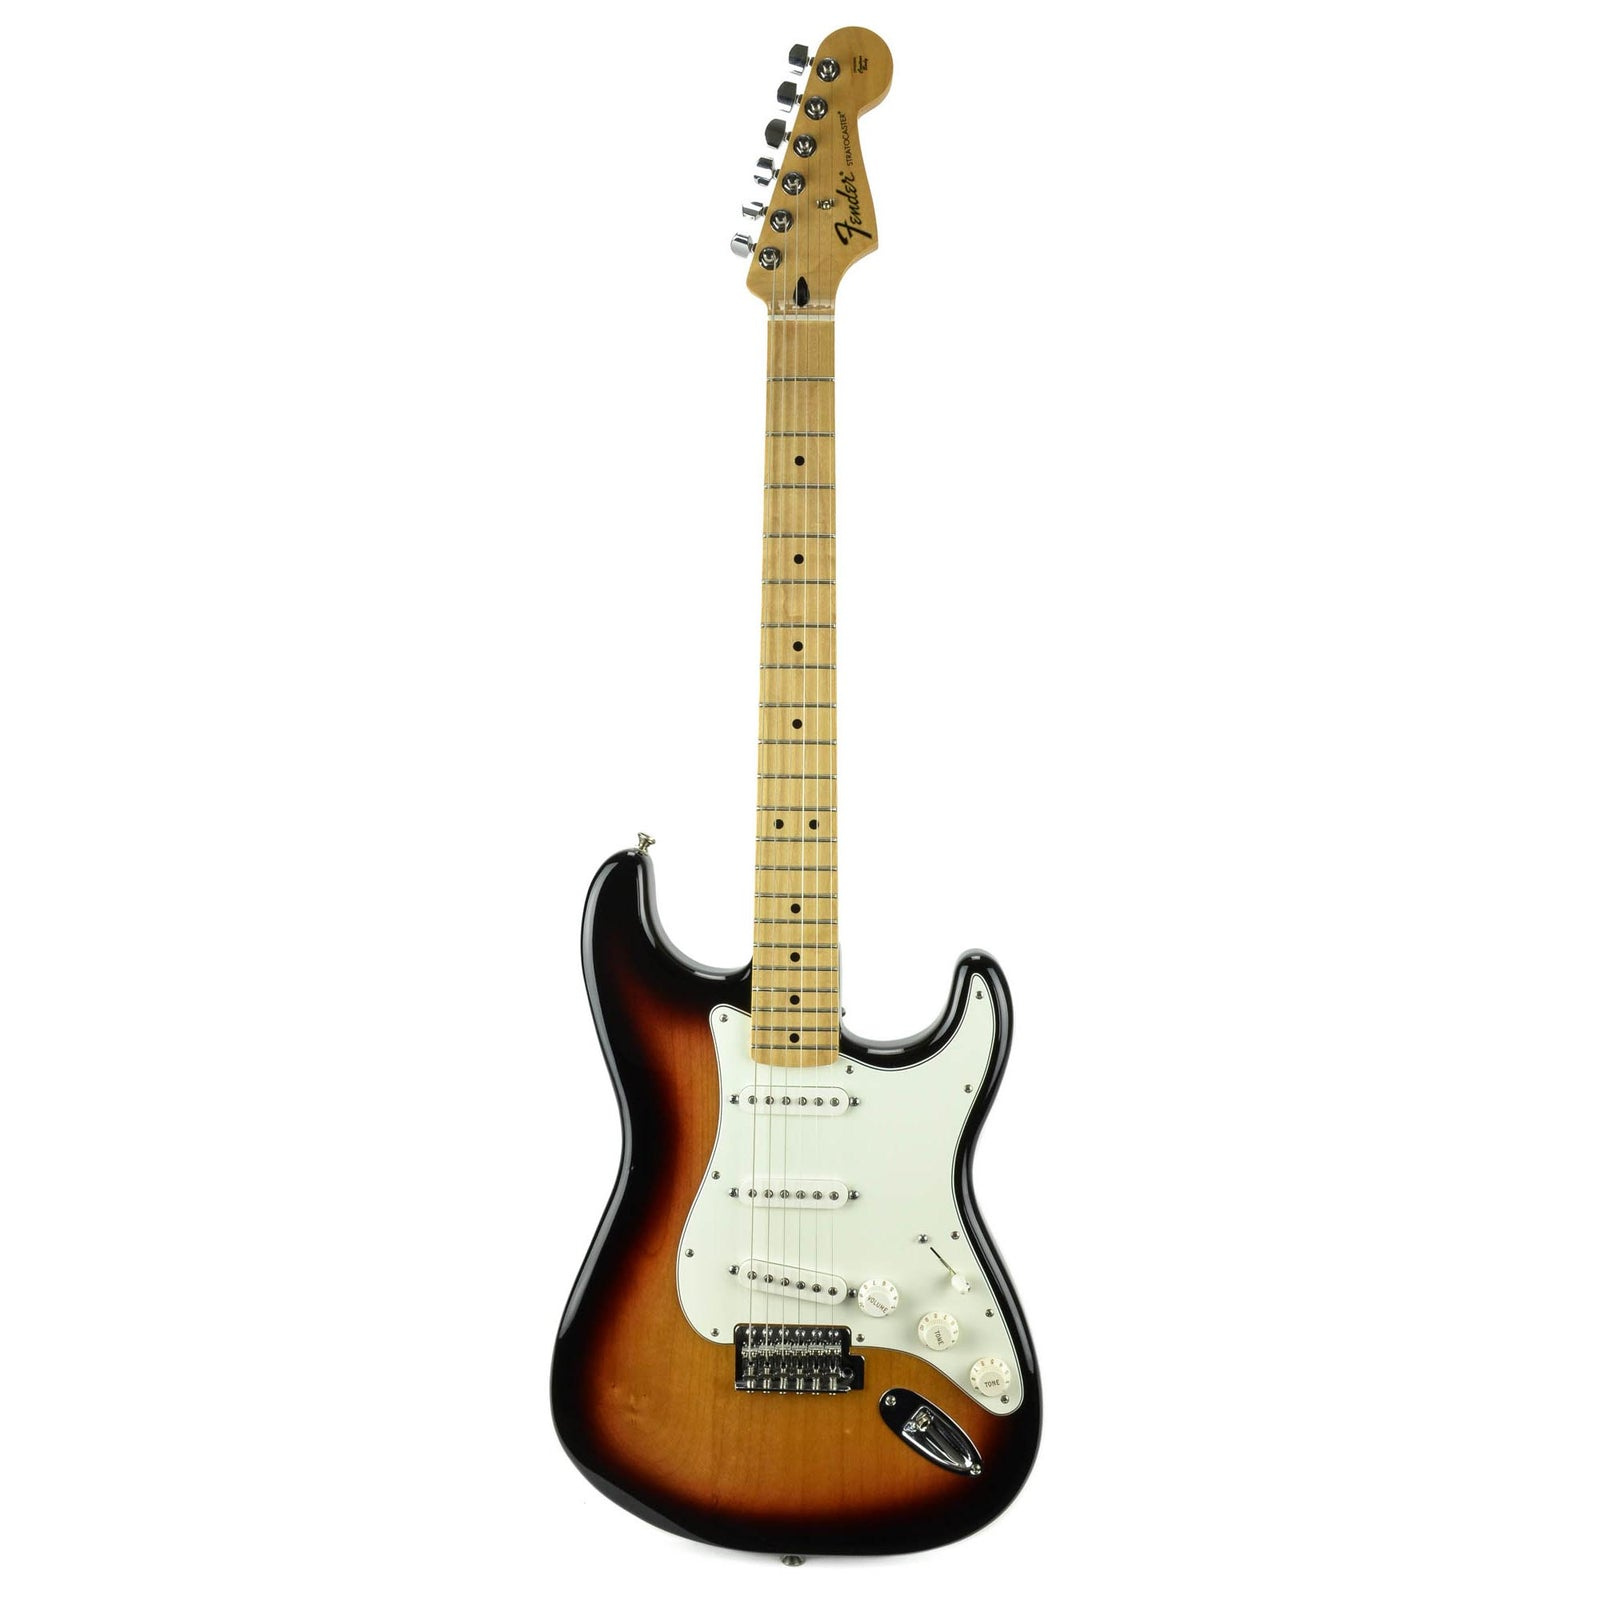 Fender Standard Stratocaster - Maple Fingerboard - Brown Sunburst - Used - Image: 3